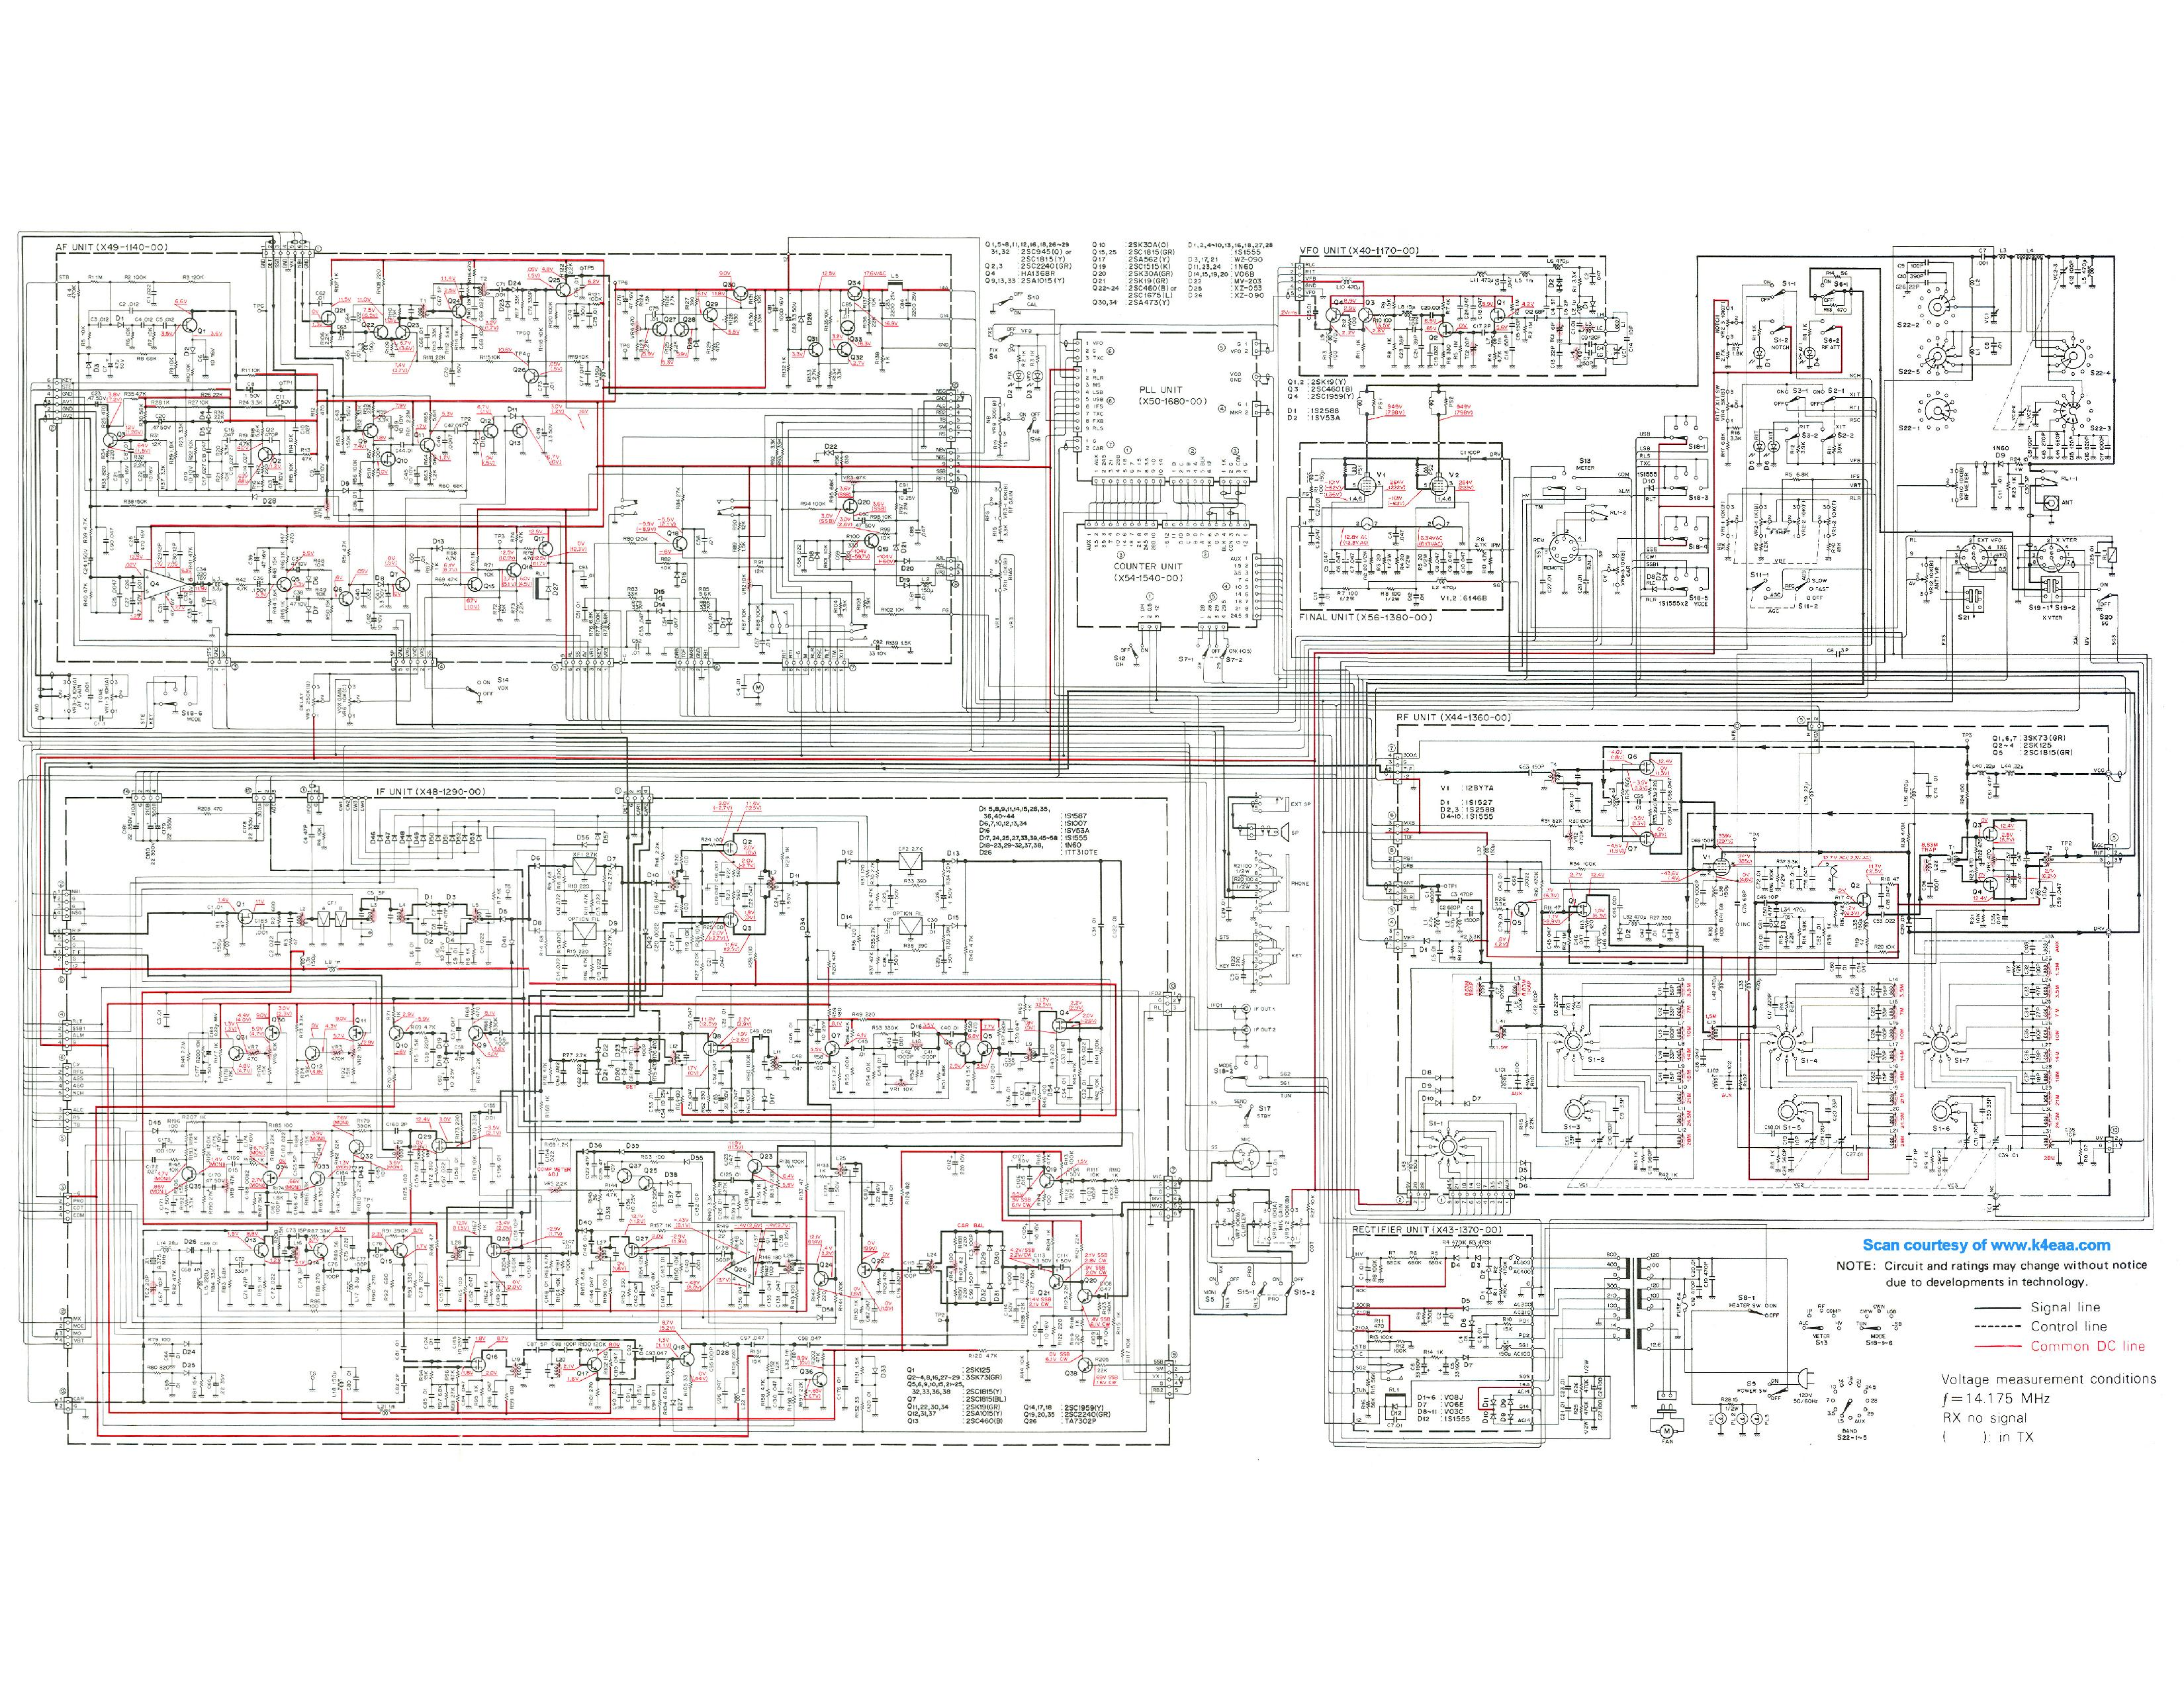 TS-830S-excellent schematic-page-001.jpg